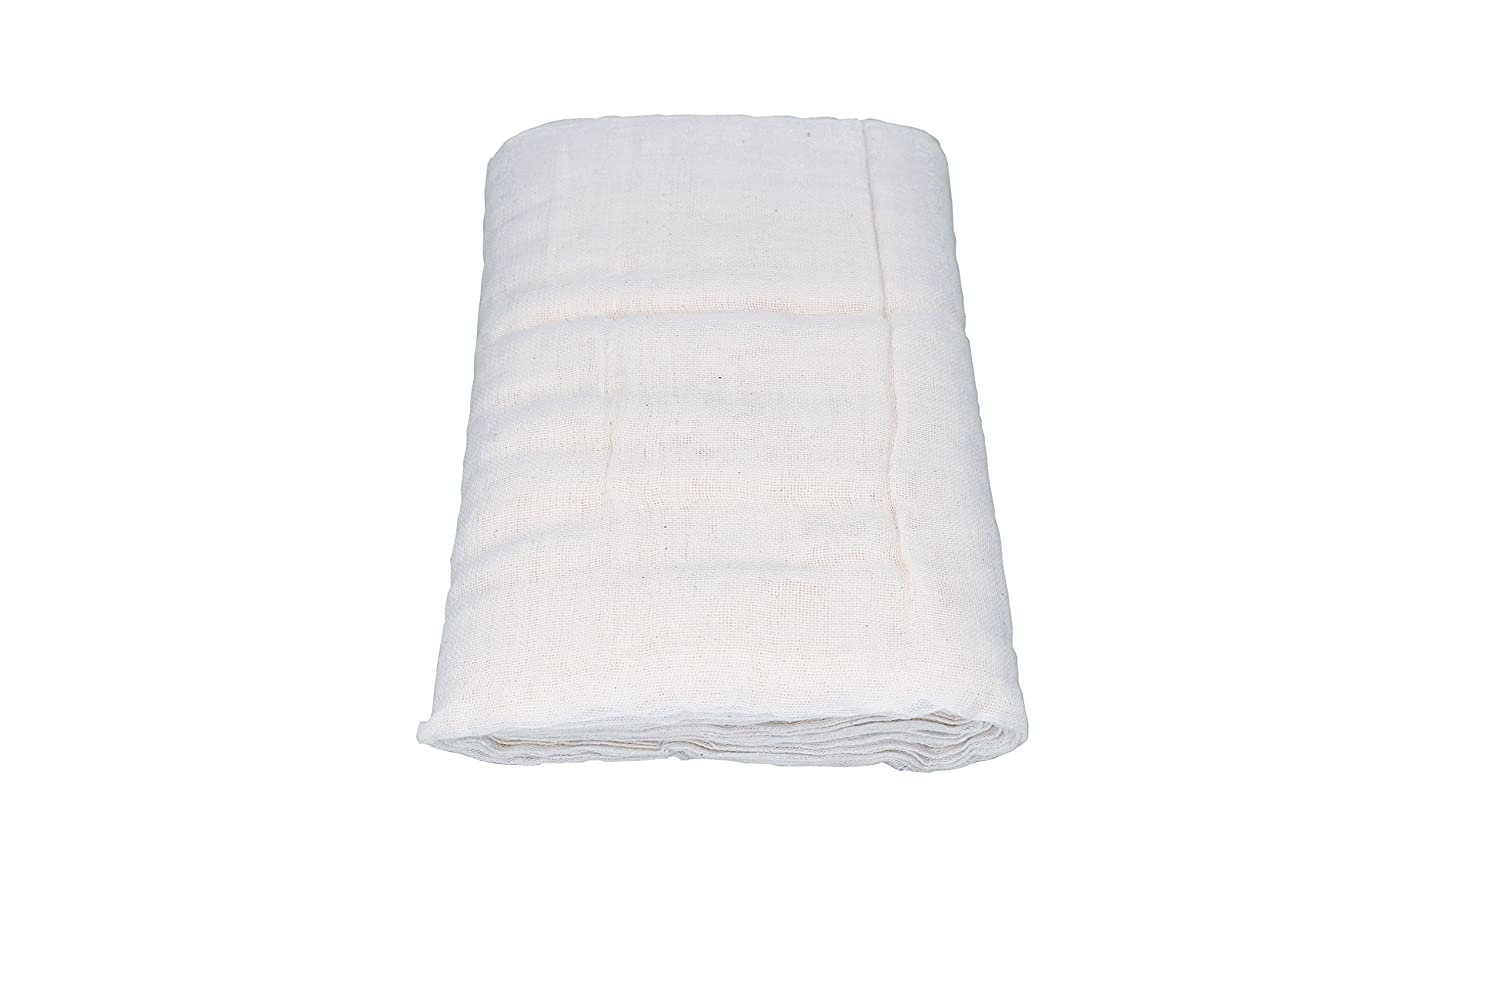 Spot on Products 100 Per Cent Natural Unbleached Cotton Cheesecloth. Fine Mesh for Excellent Straining. Lightweight Durable Reusable Breathable Many Kitchen, Craft Uses Grade 60. Economical 45 Sq Feet